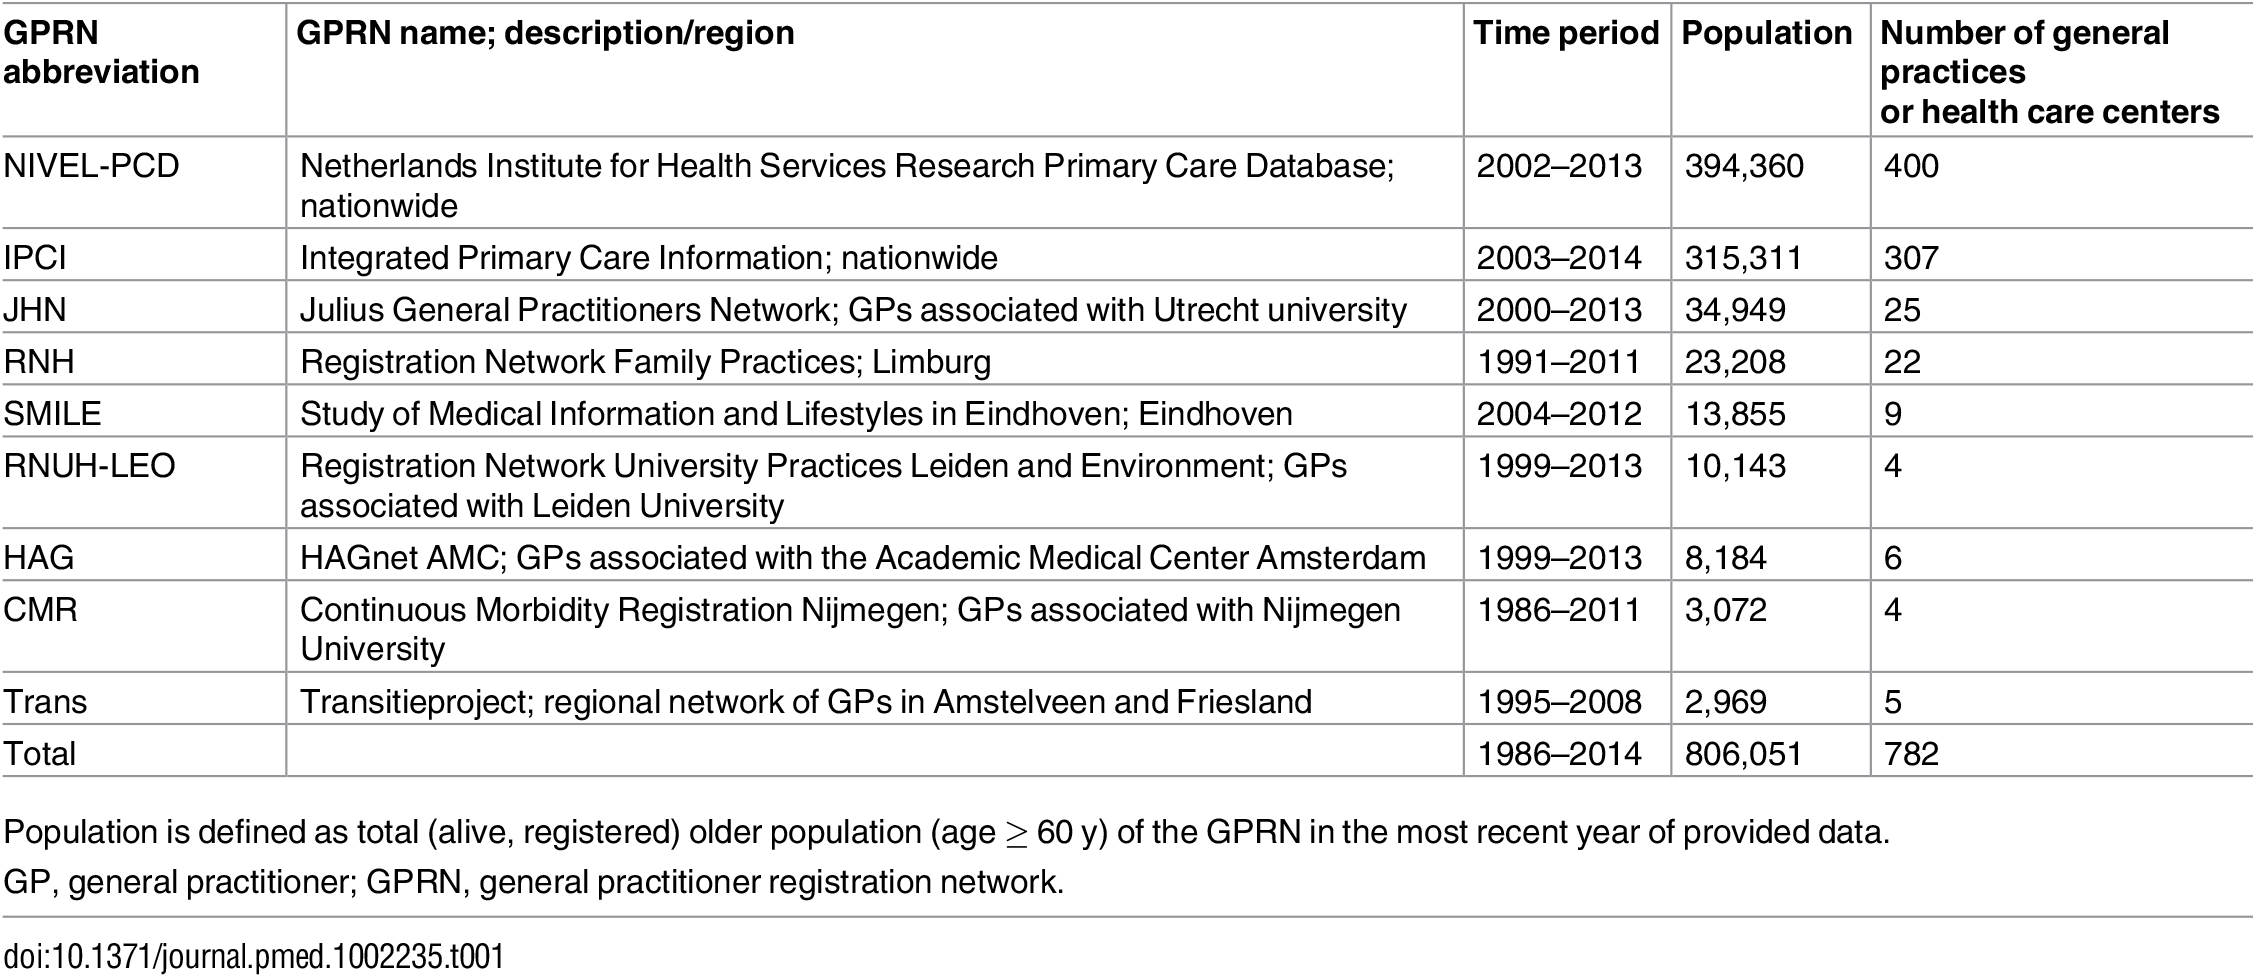 Characteristics of the Dutch general practice registration networks included in this study.